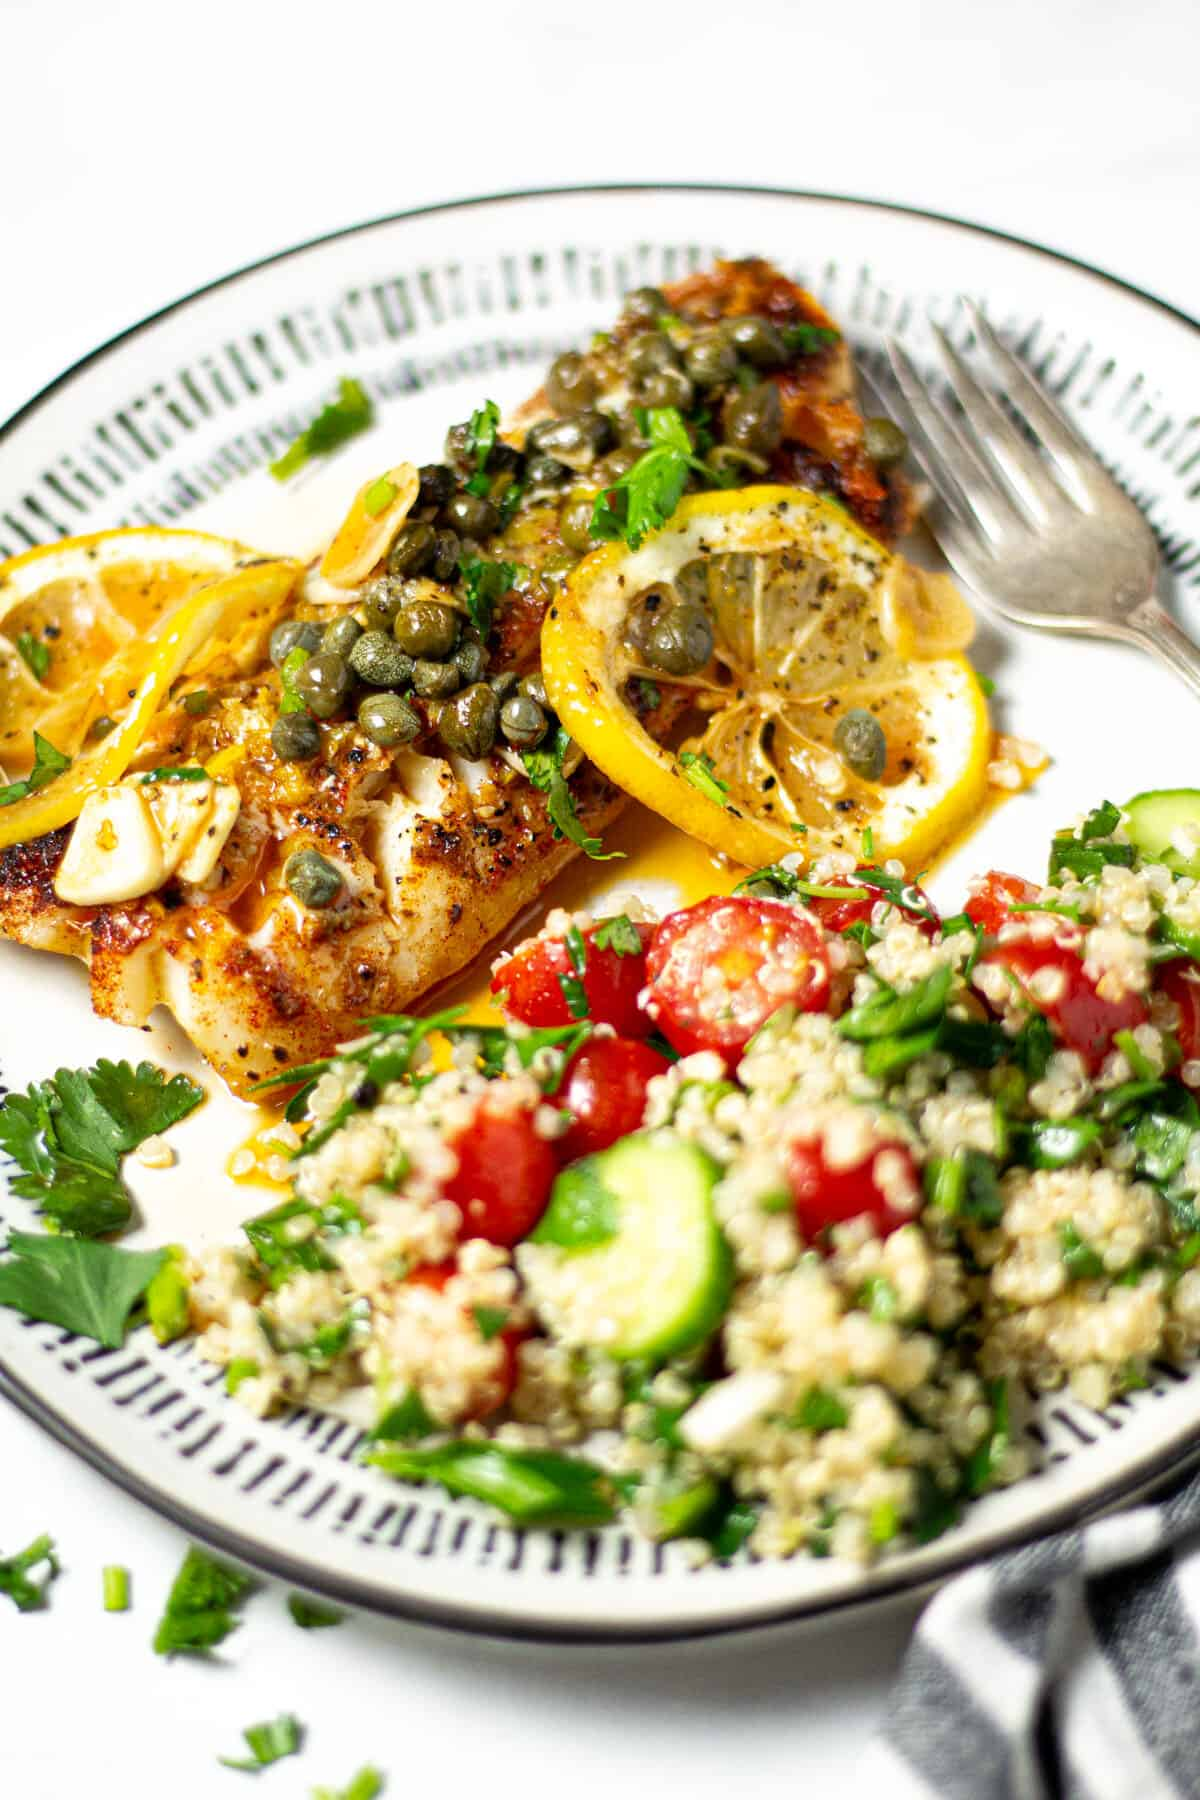 A plate filled with quinoa tabbouleh and Mediterranean cod garnished with fresh parsley